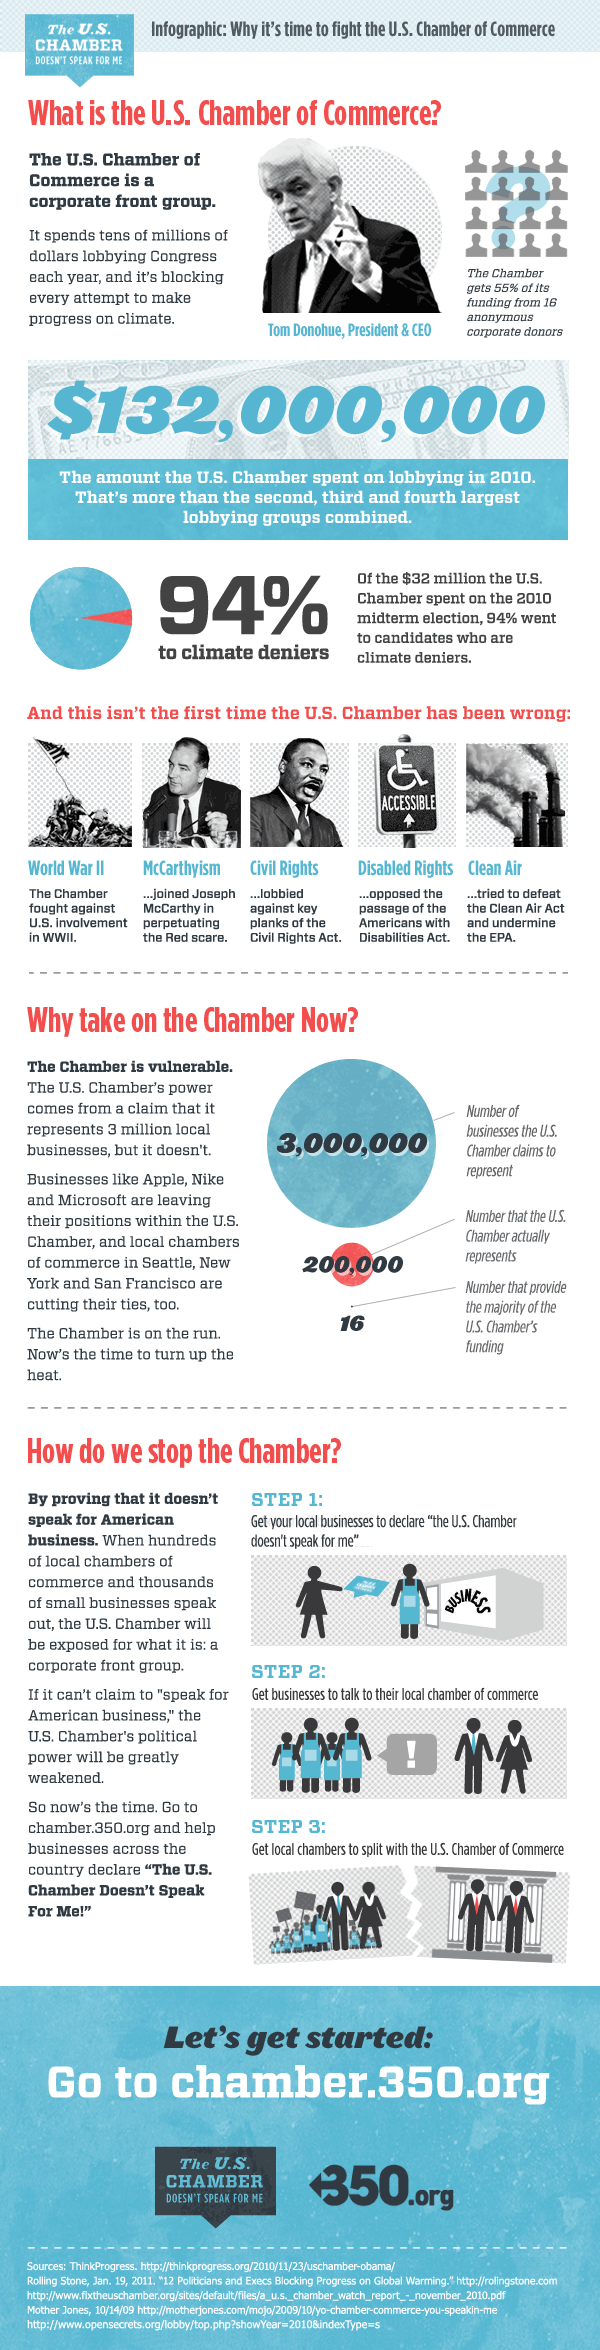 Infographic – Why It's Time to Fight the U.S. Chamber of Commerce